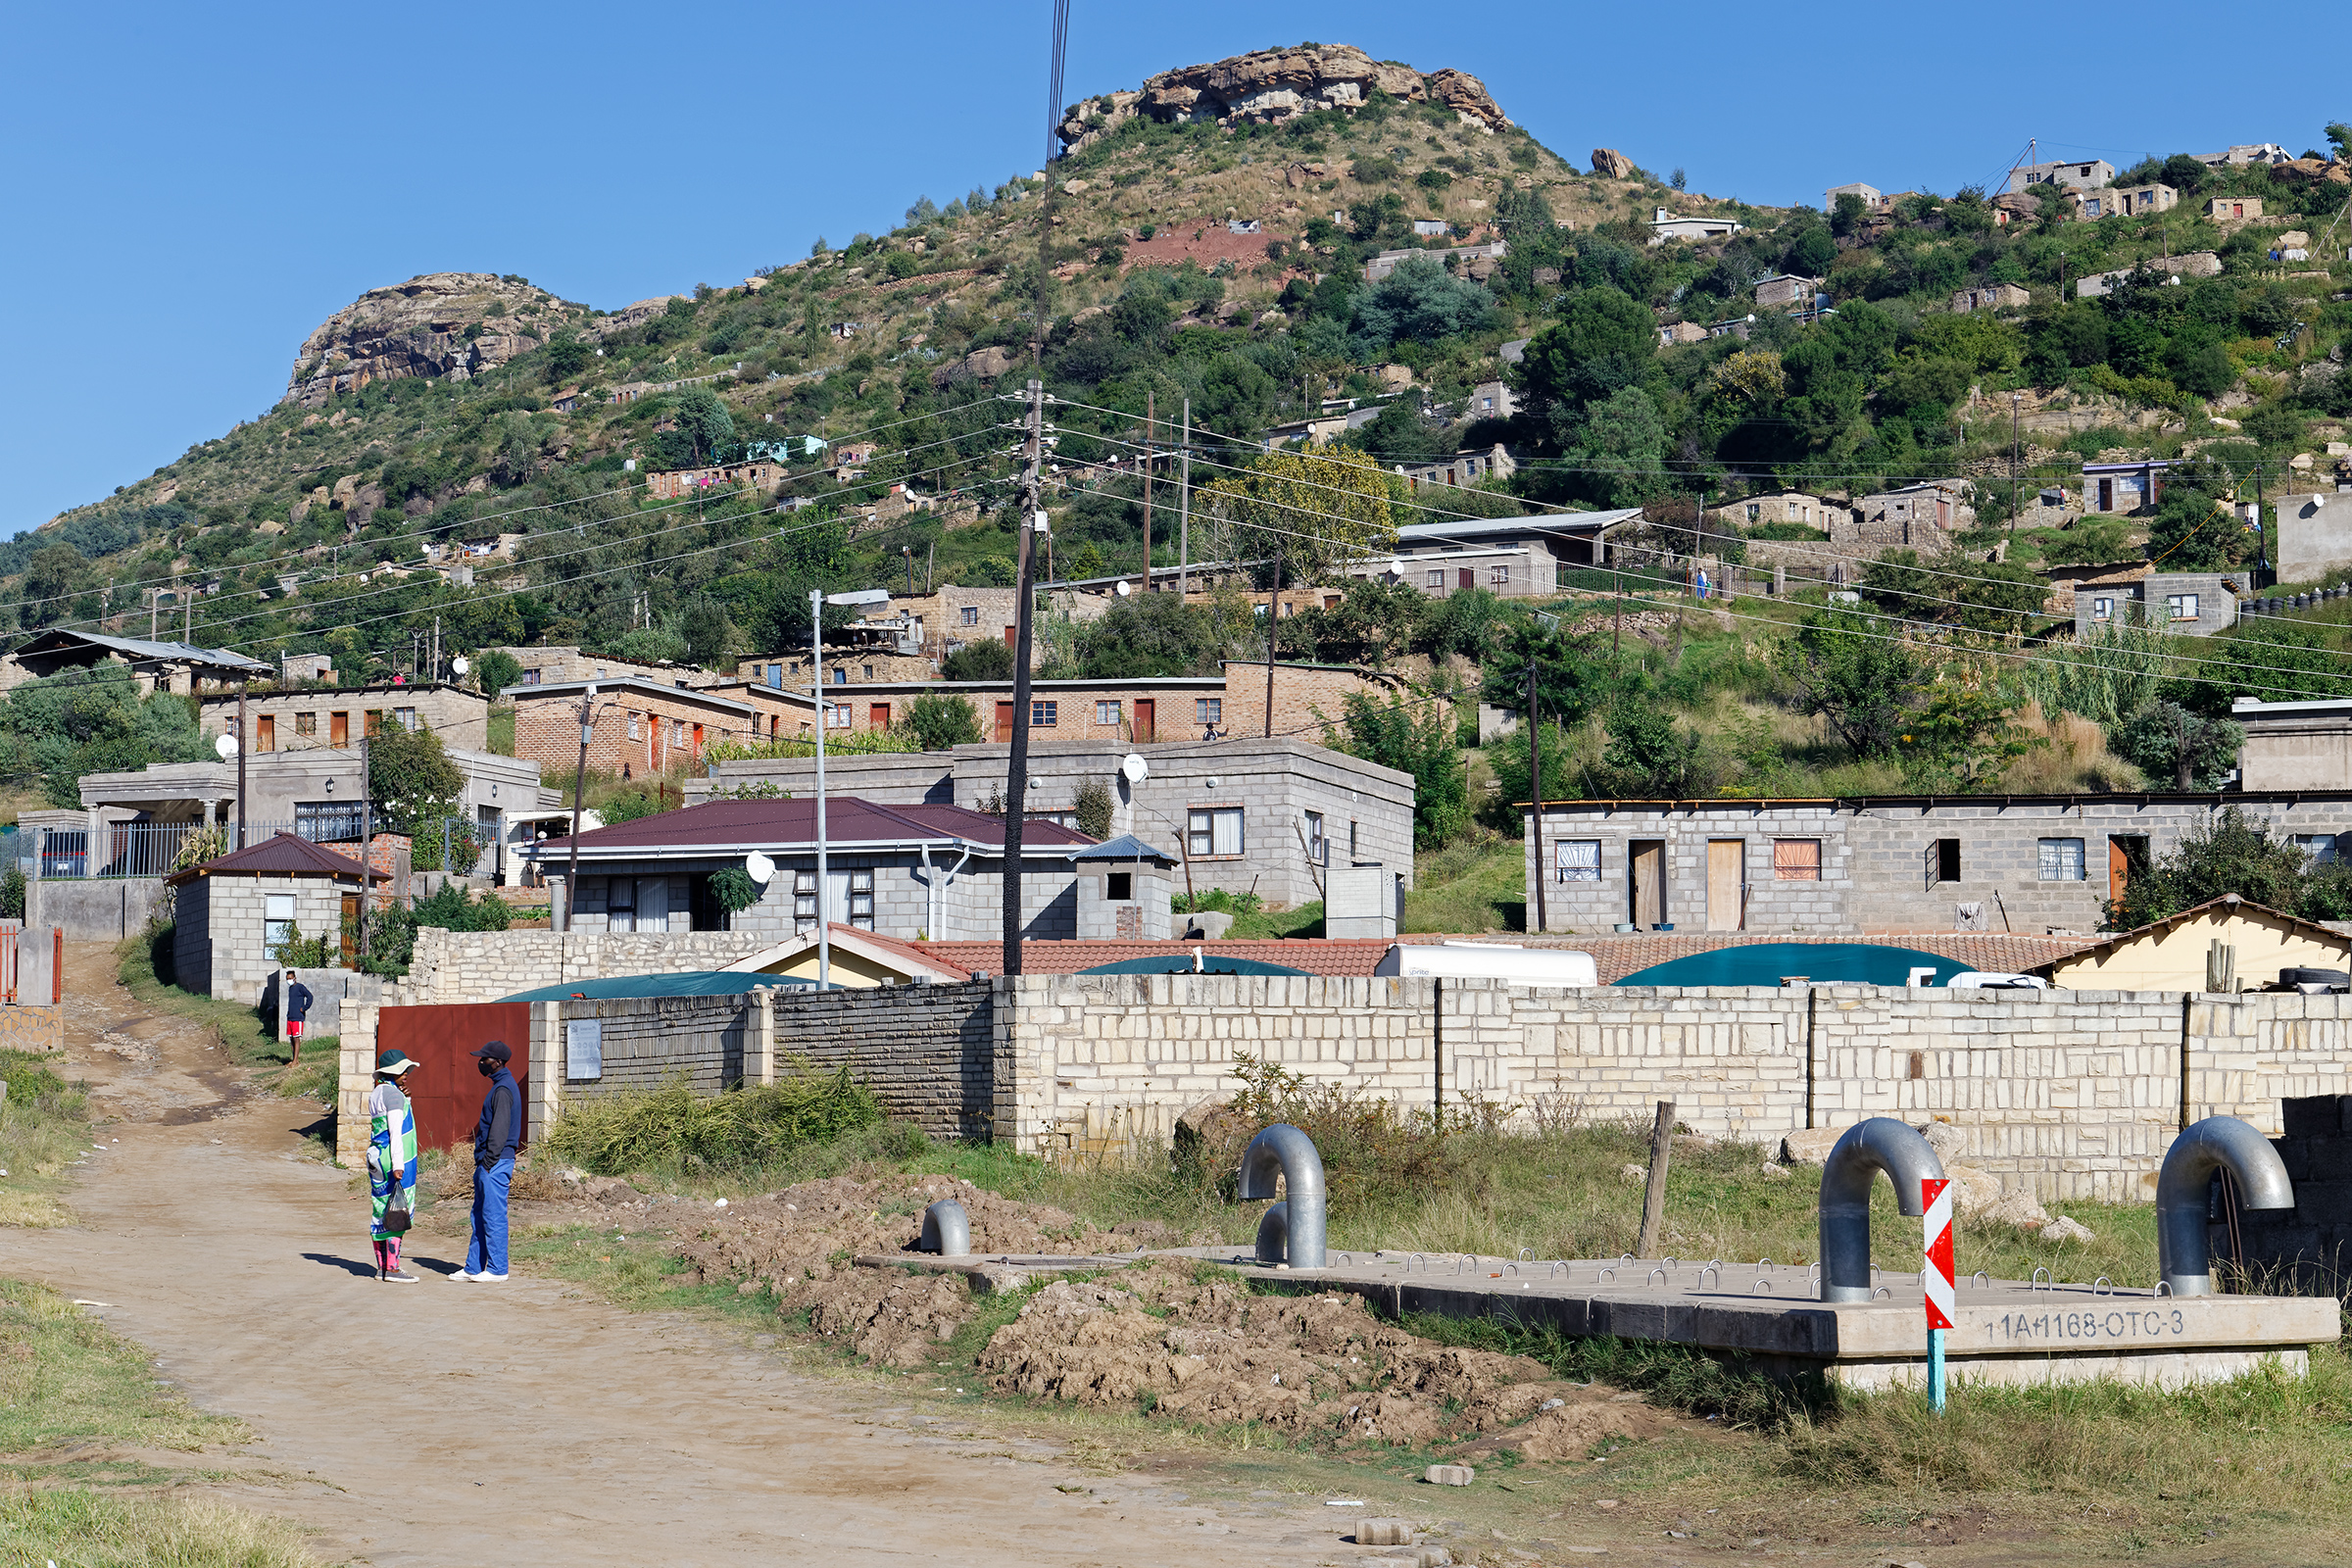 A scene from Thabong, one of the villages in Maseru, Lesotho's capital, where many factory workers live.